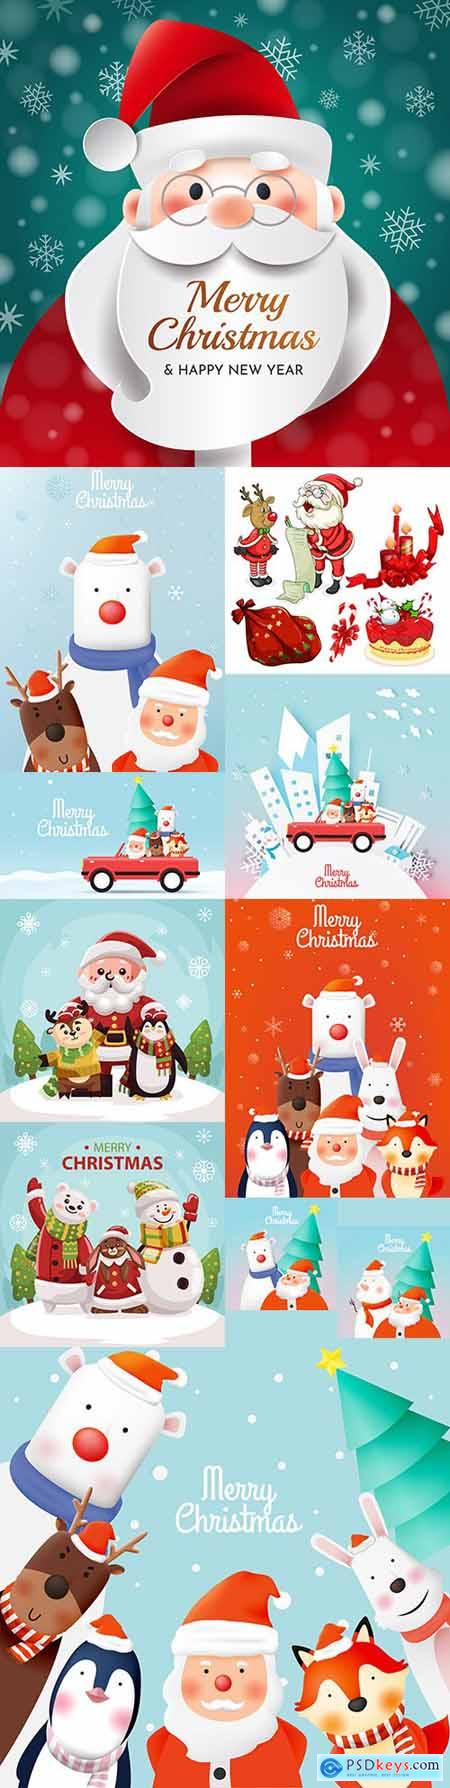 Santa Claus and friends animal cute New Year characters illustrations